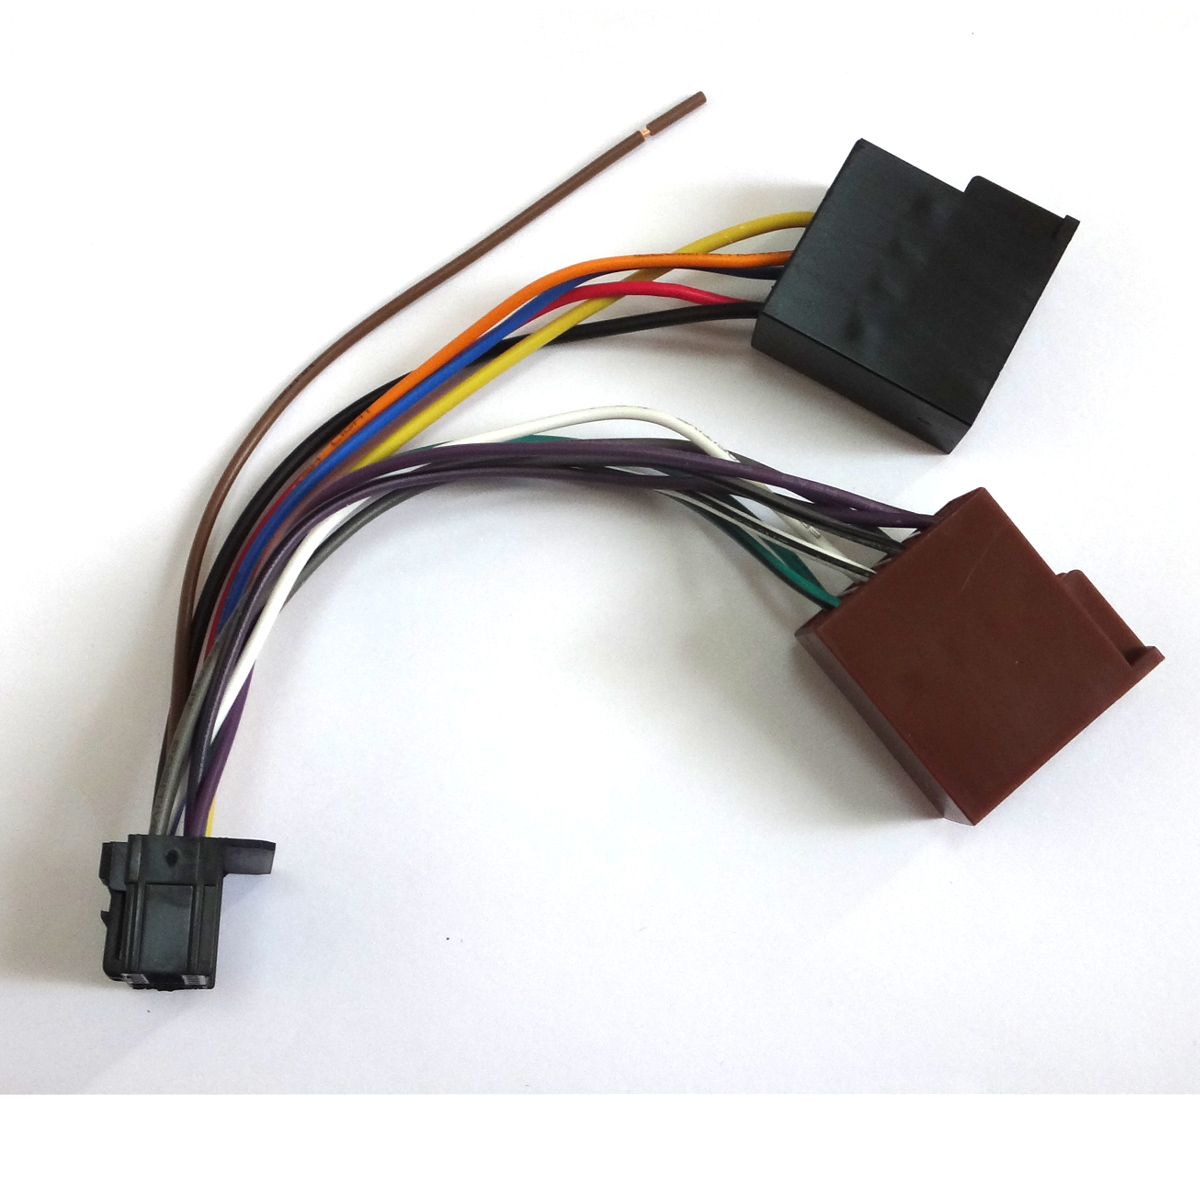 medium resolution of pioneer 4400bh 16 pin wiring harness free download wiring diagrams car stereo wiring colors pioneer 4400bh